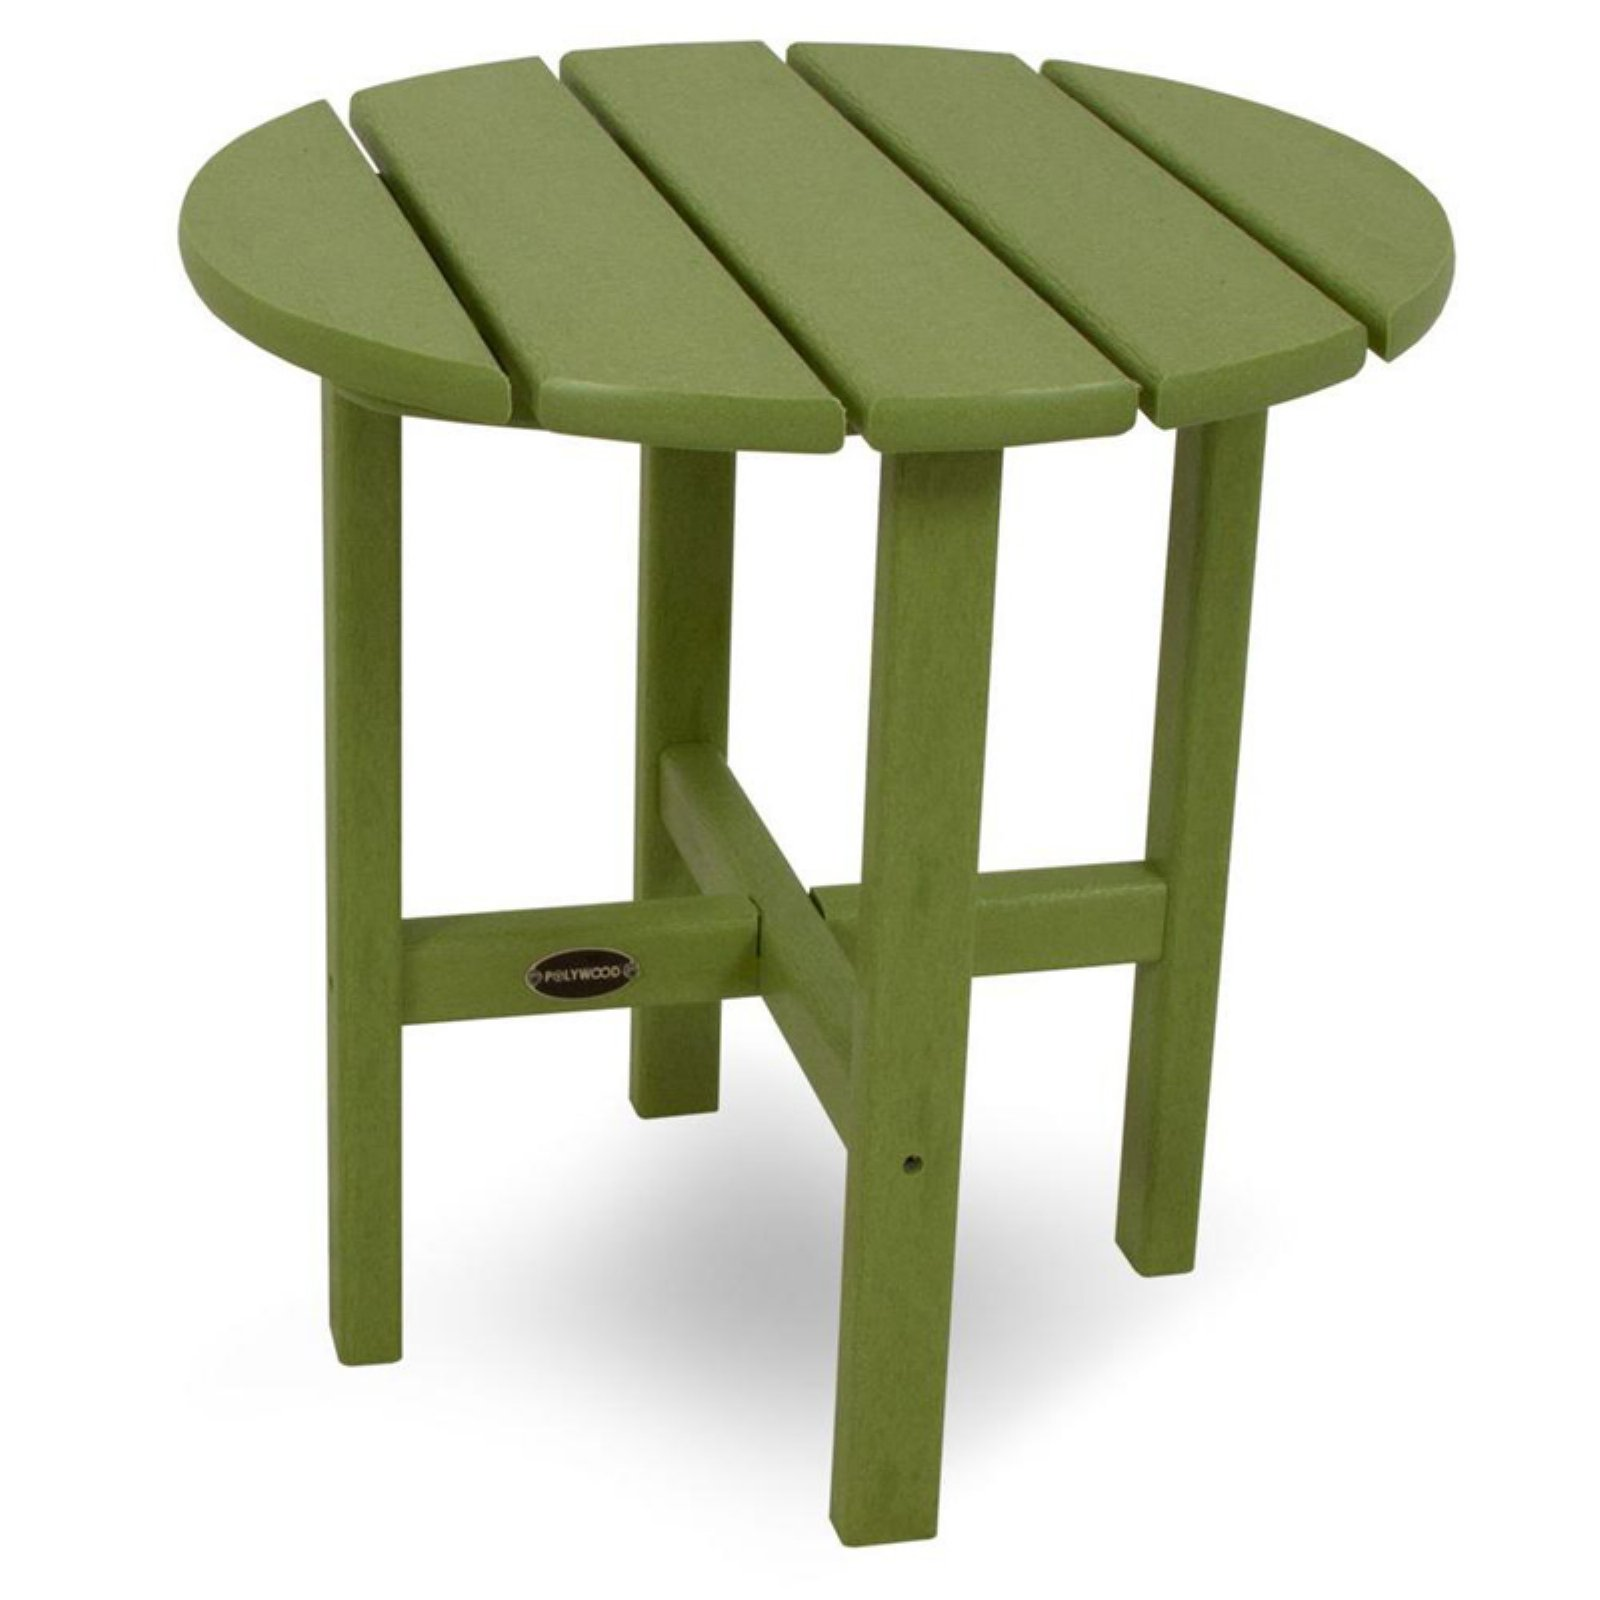 POLYWOOD® Vineyard Recycled Plastic 18 in. Round Side Table